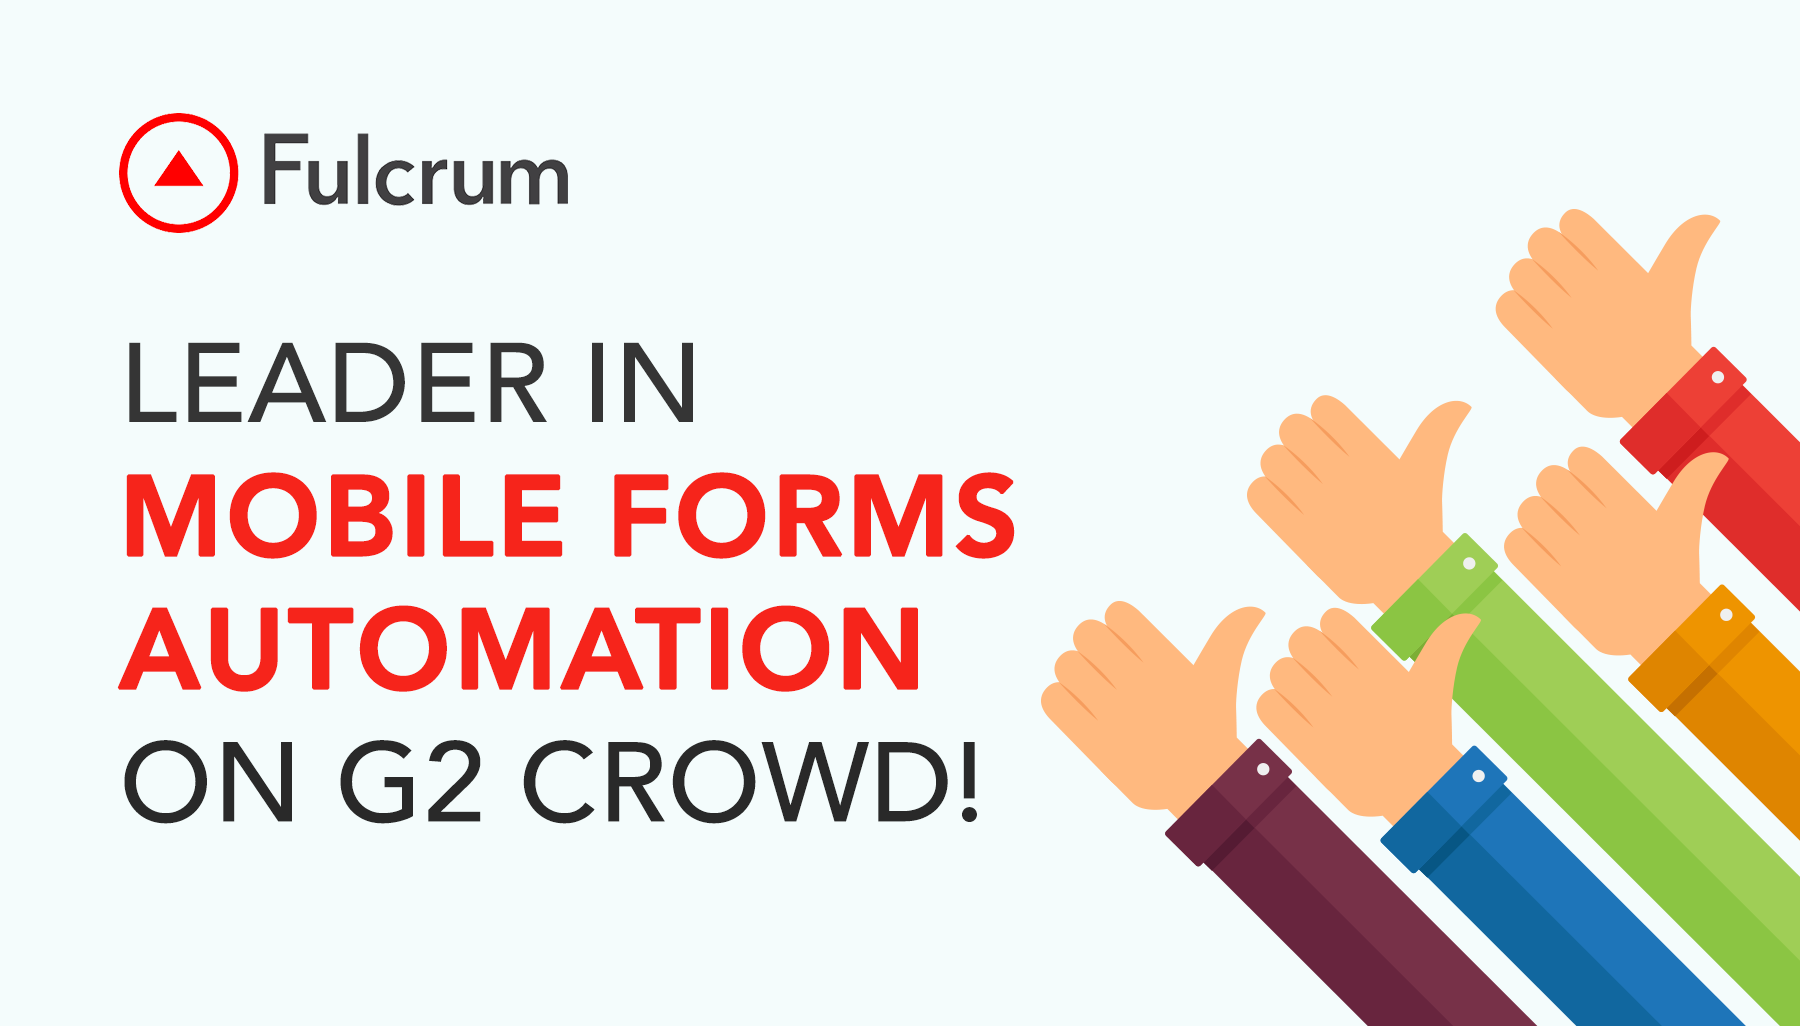 Fulcrum Recognized as a Leader in Mobile Forms Automation by G2 Crowd